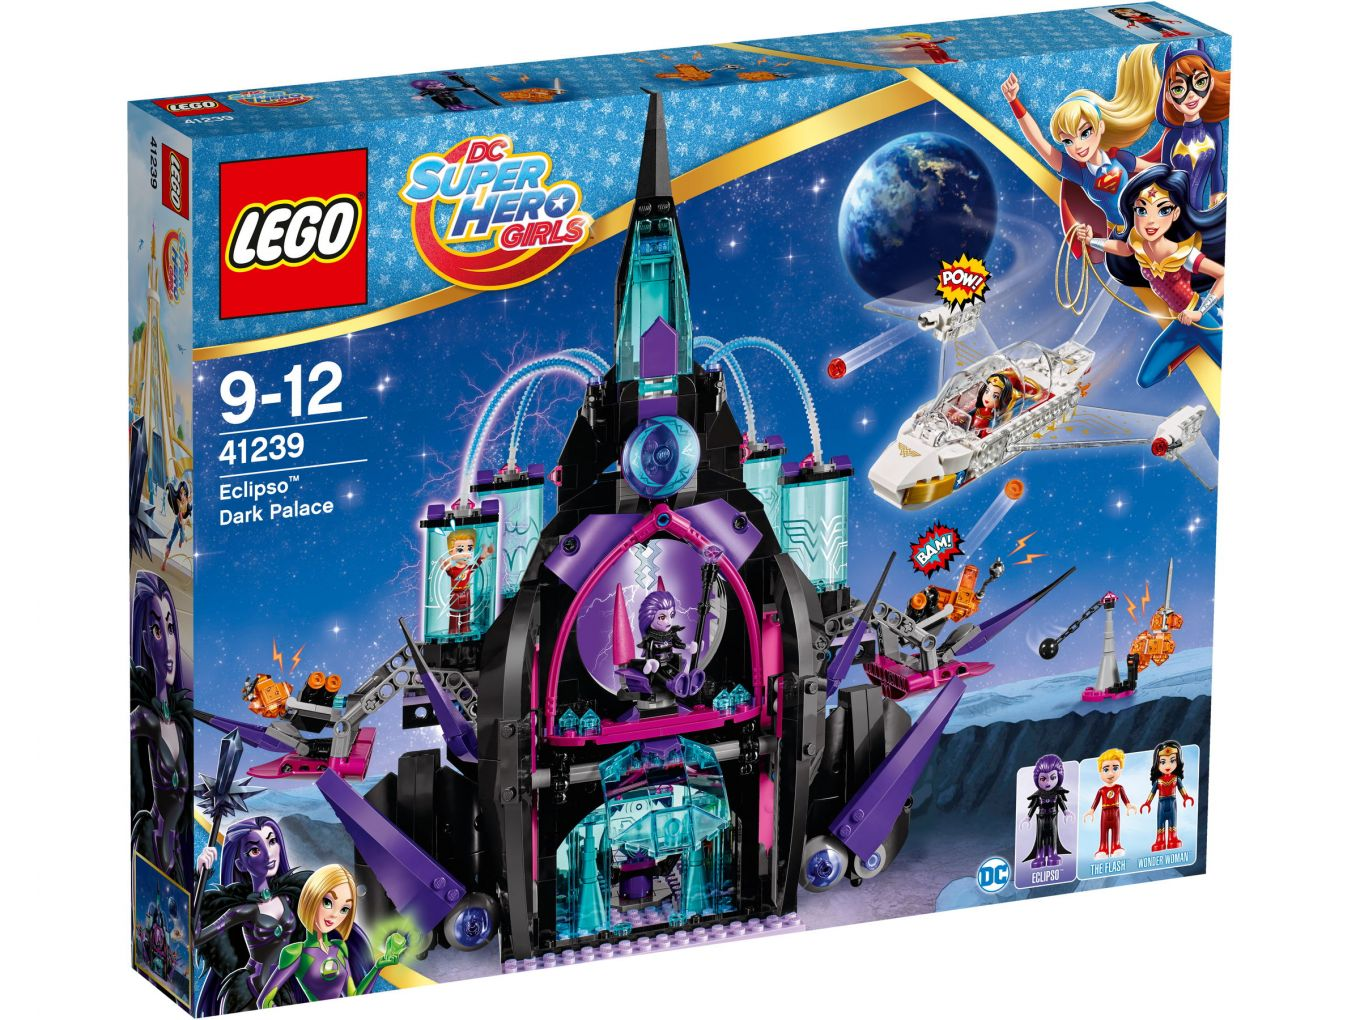 LEGO DC Super Hero Girls 41239 Eclipso Duister paleis